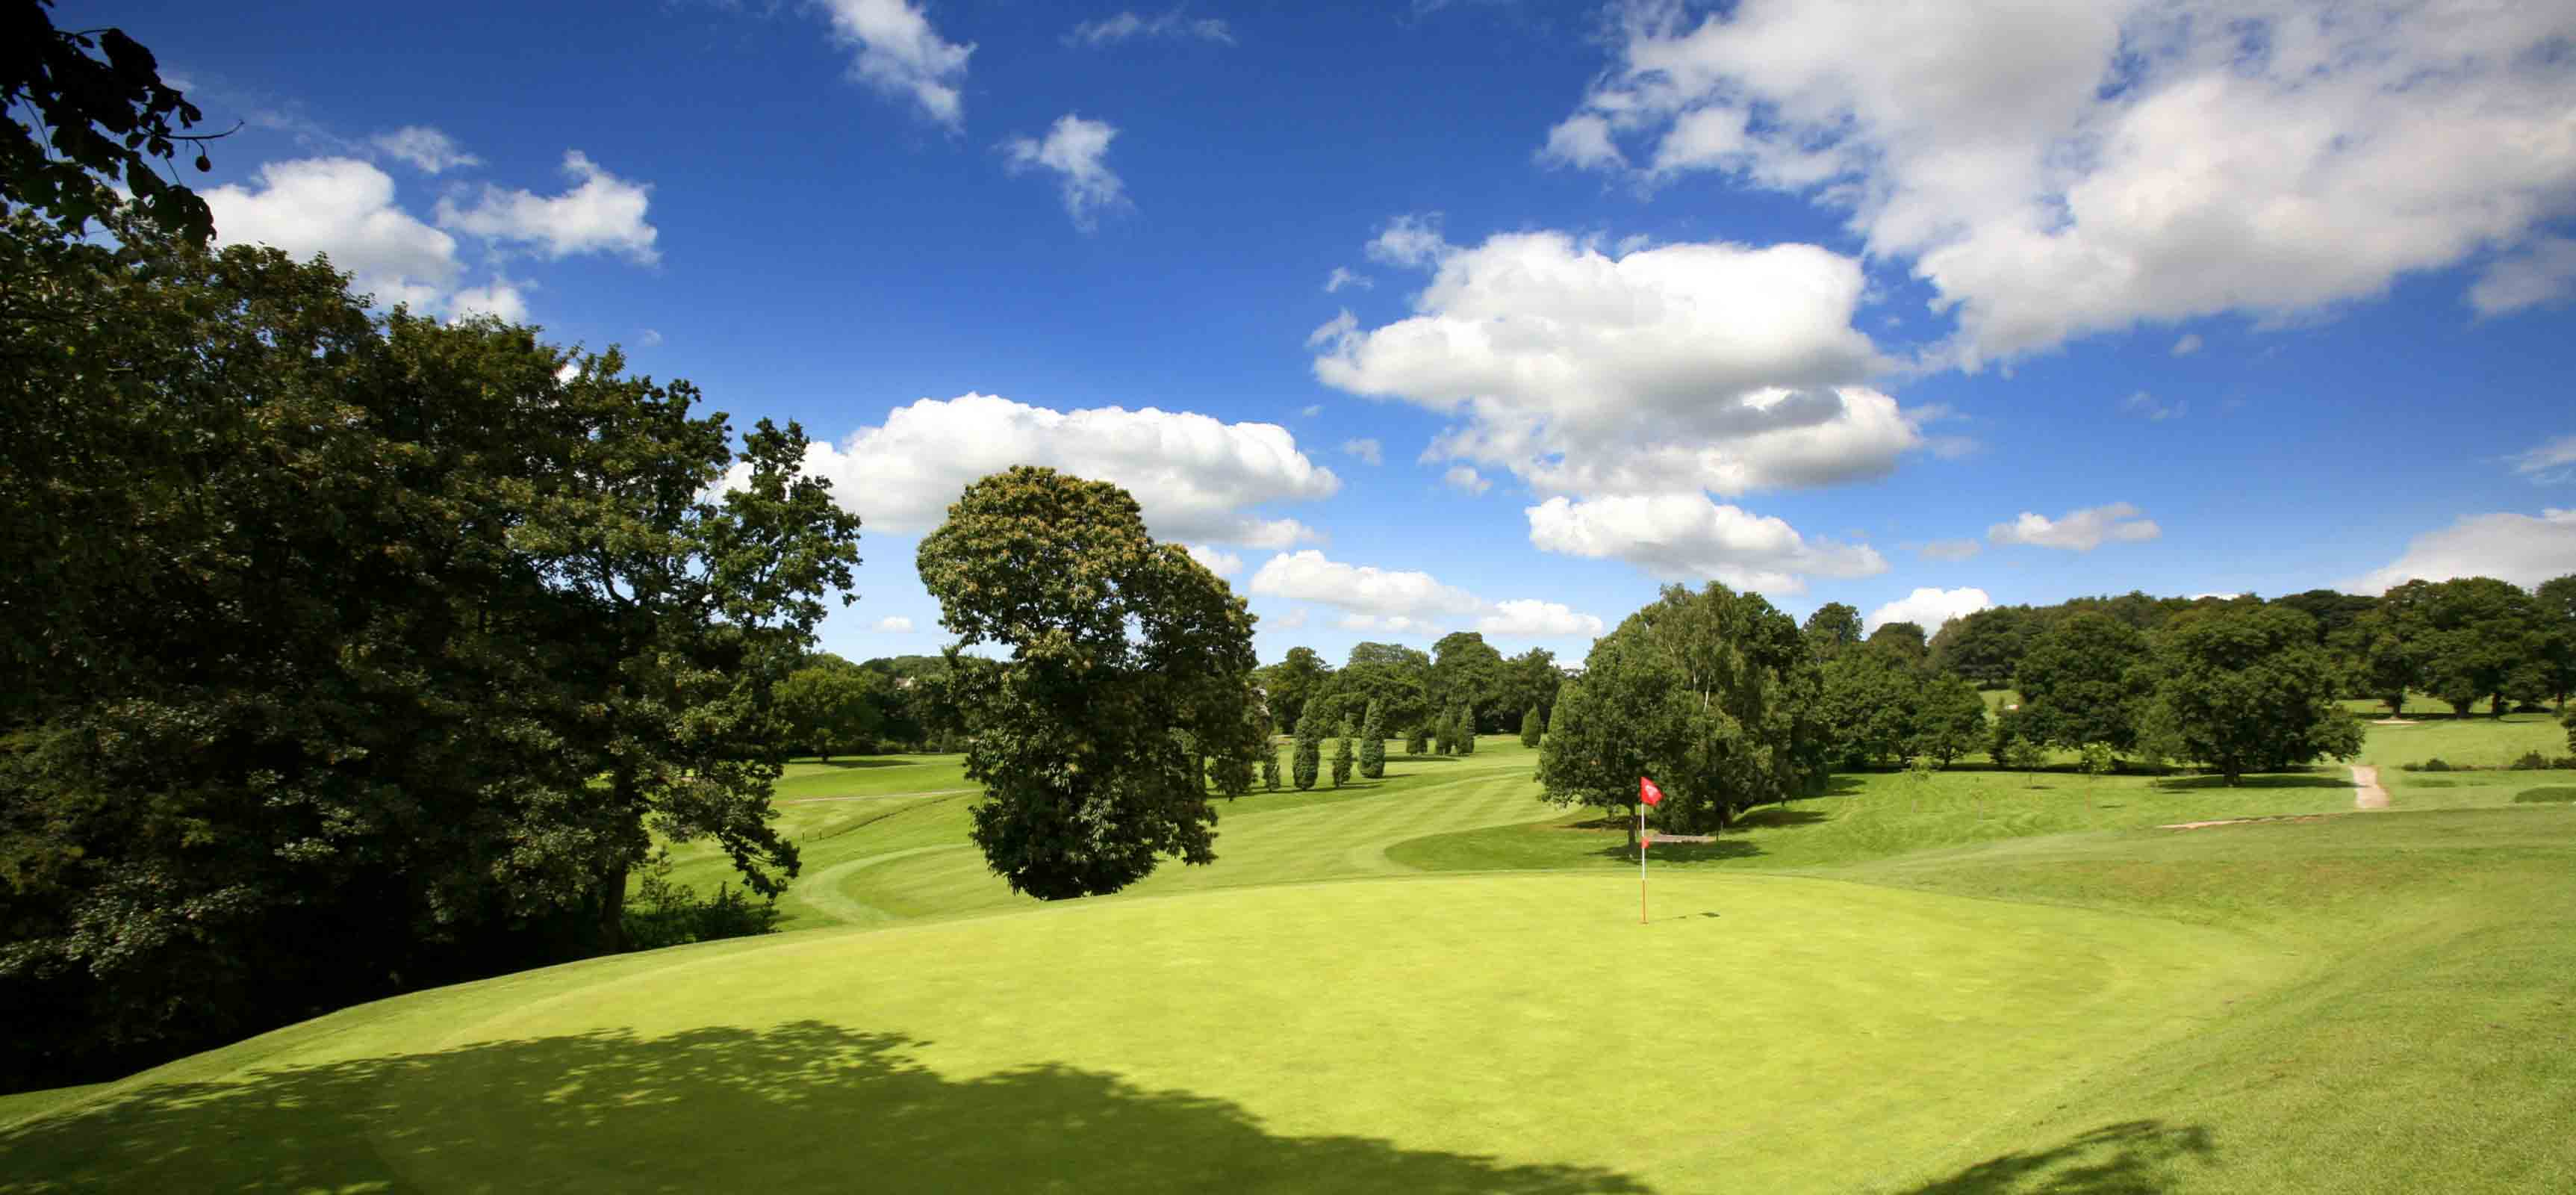 Breadsall Priory - Championship Priory Course